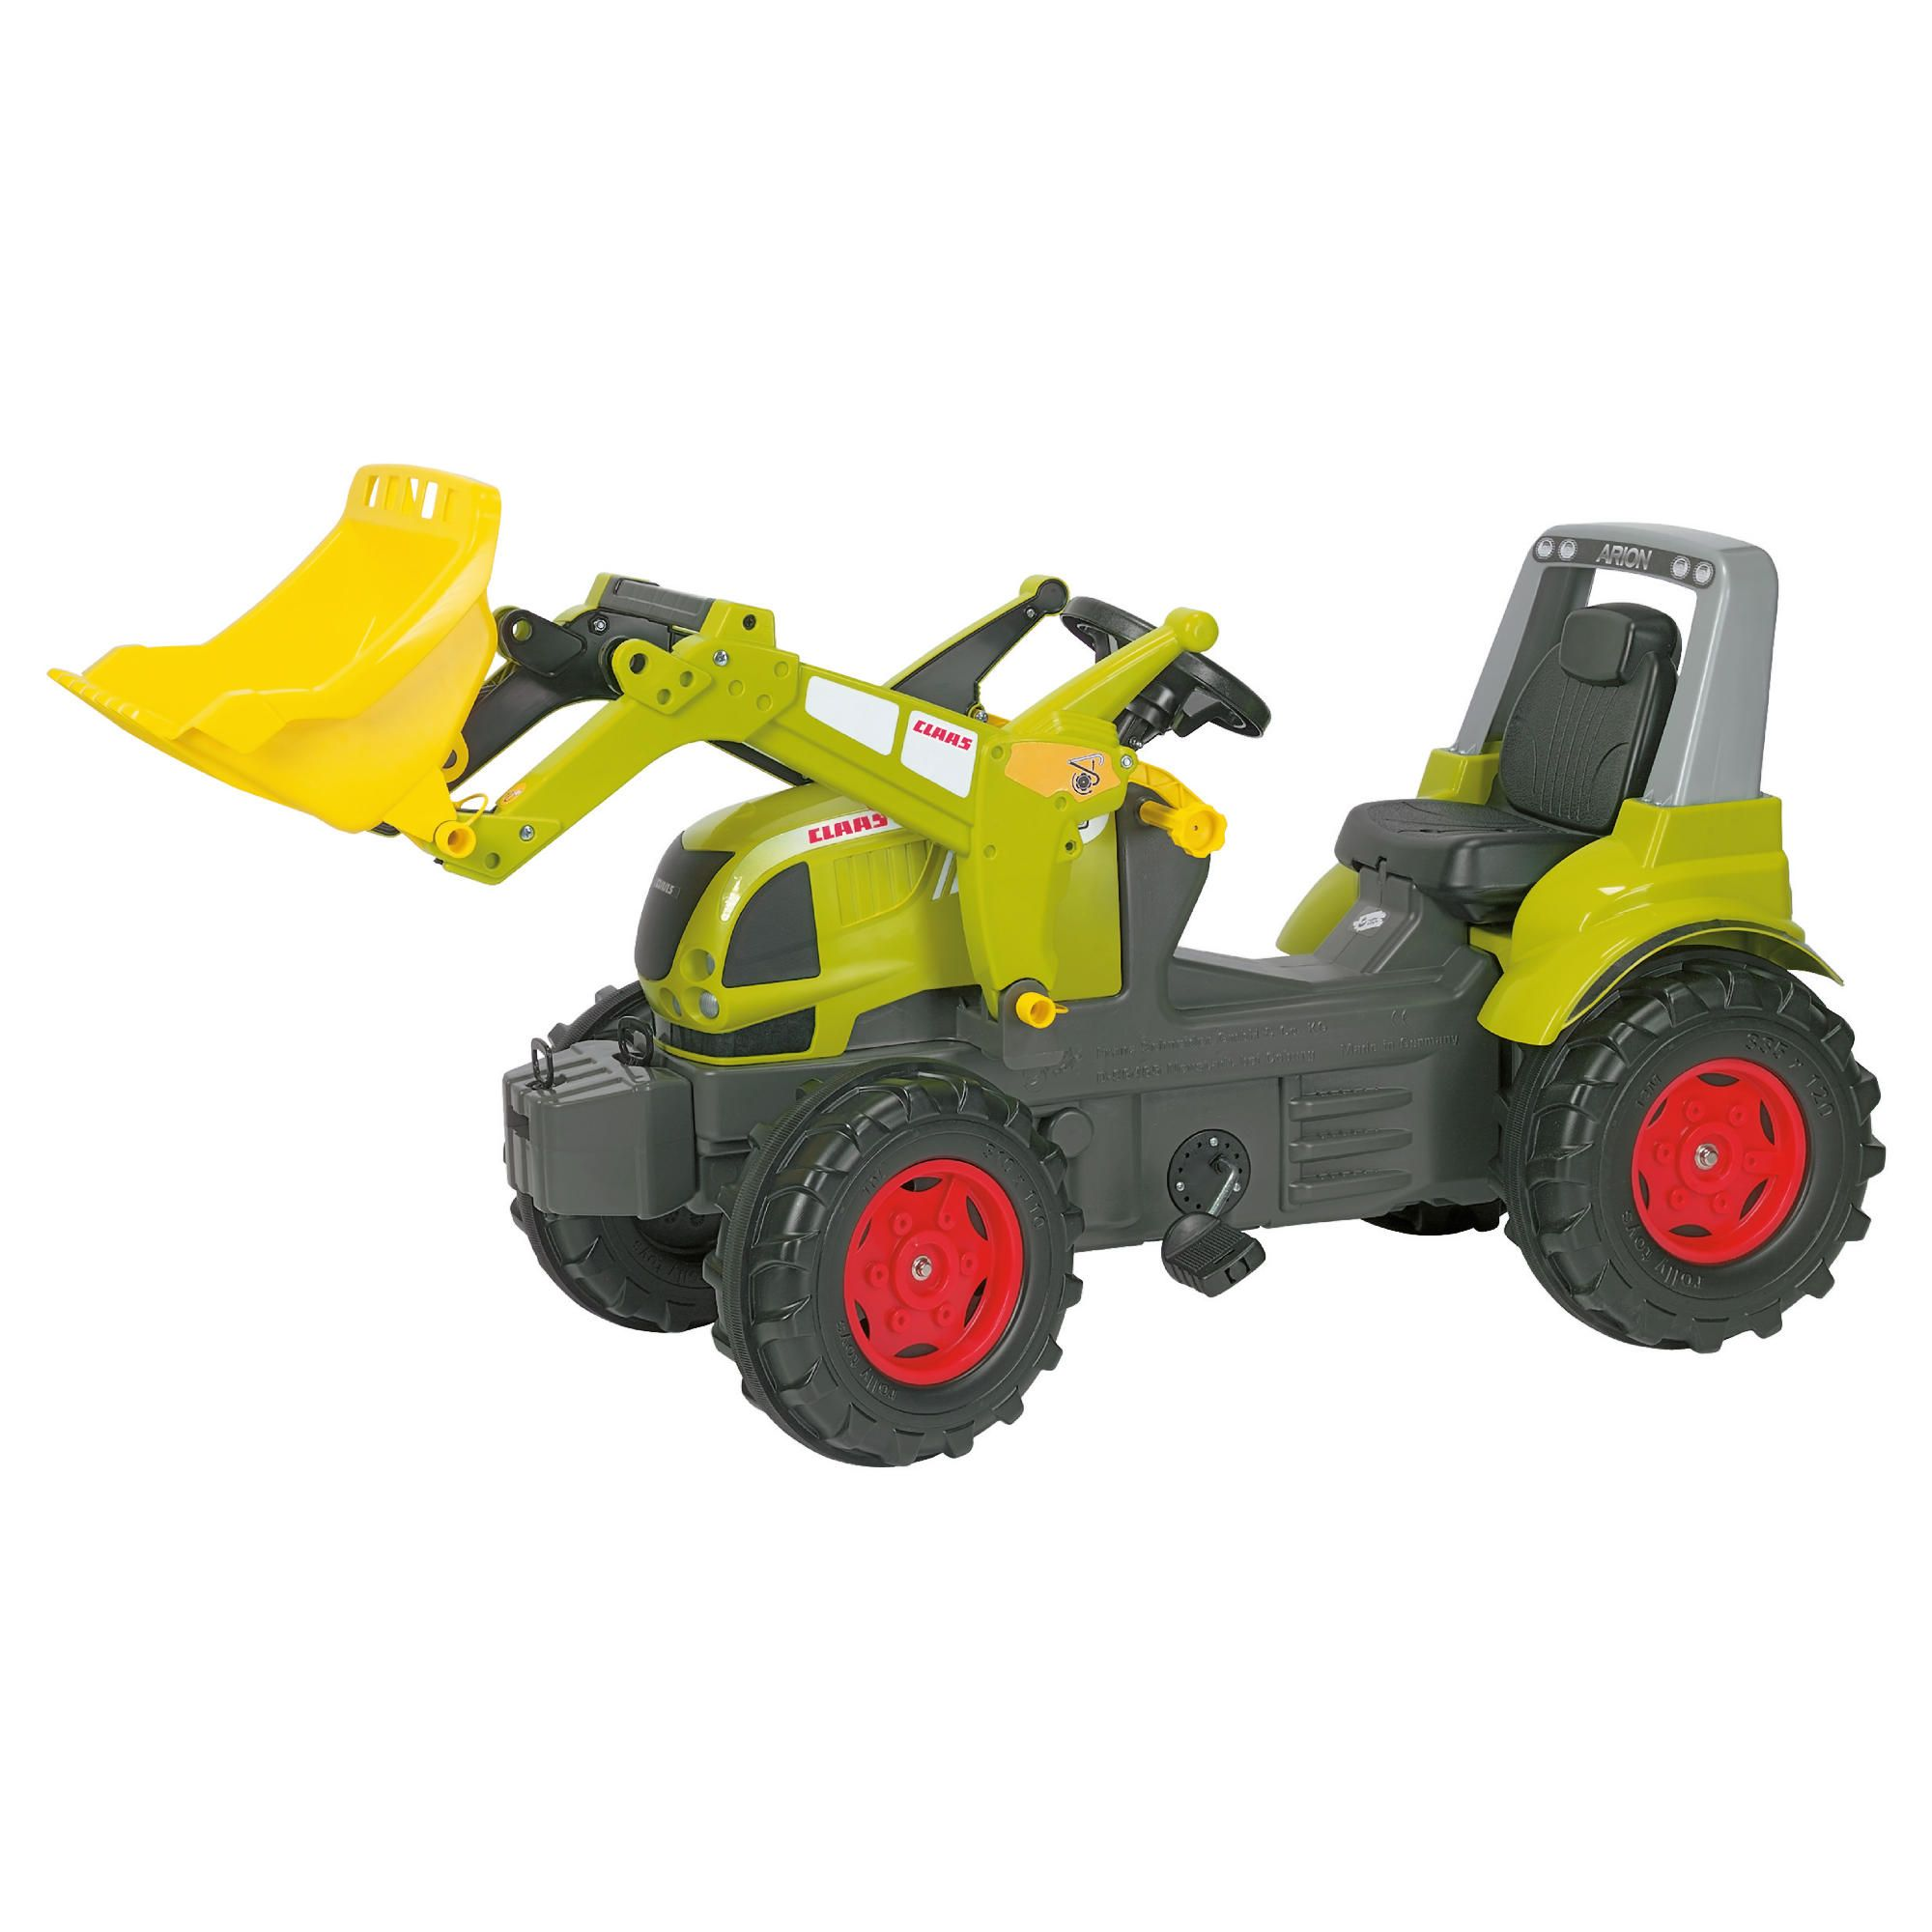 Claas Arion 640 Ride-On Tractor With Rolly Trac Loader at Tesco Direct